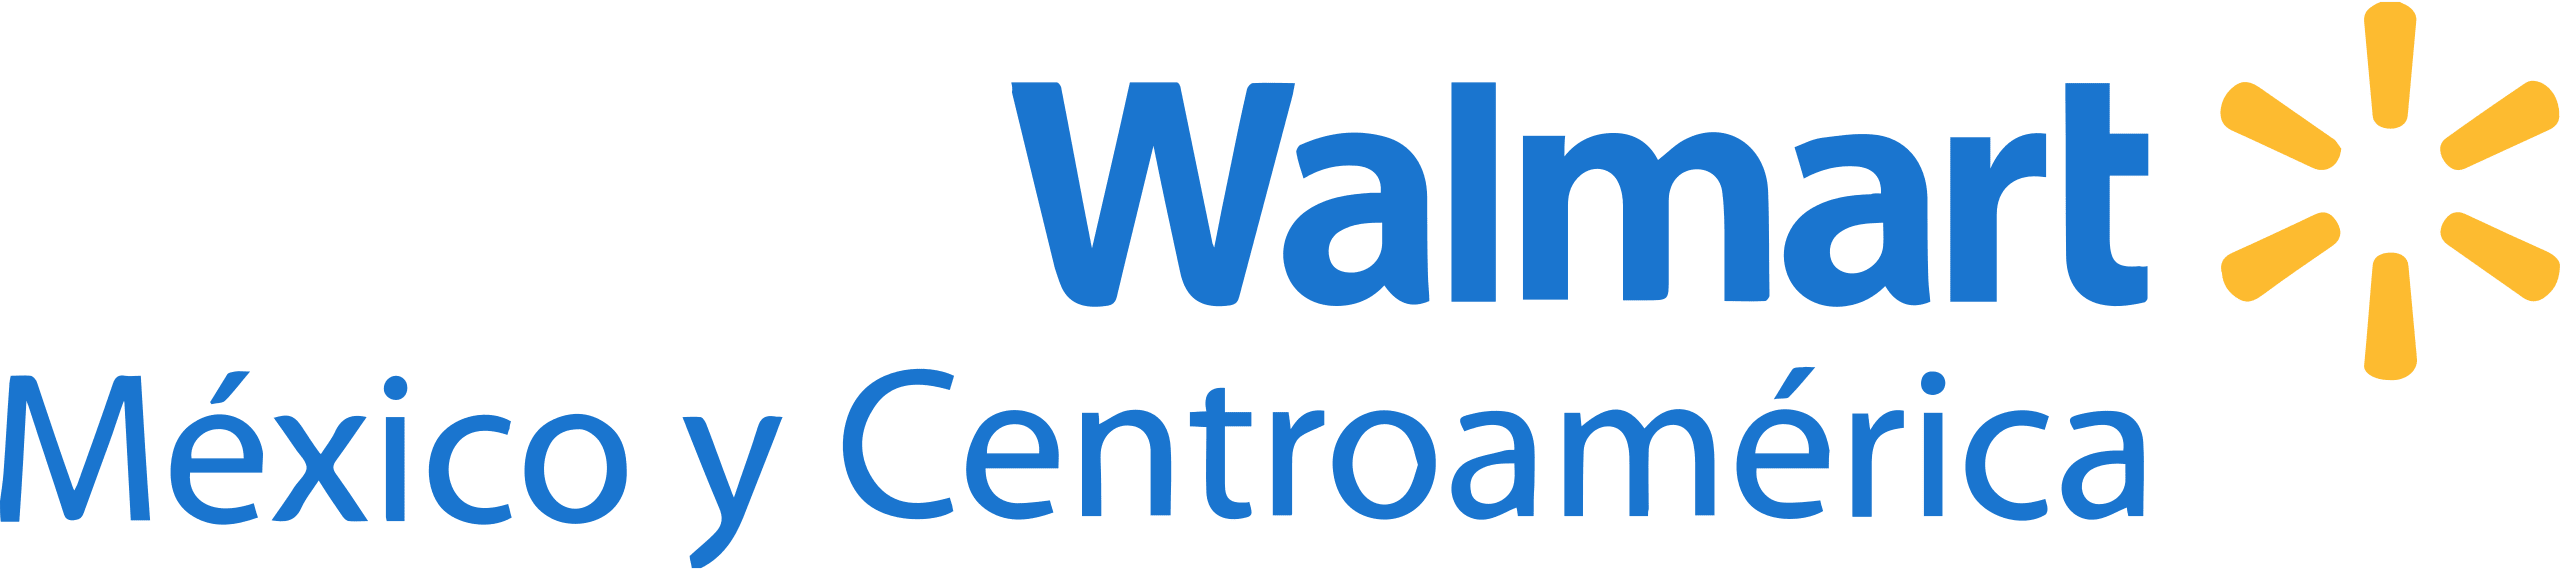 Fabulous Walmarts Top Companies And Brands Wiring Digital Resources Lavecompassionincorg